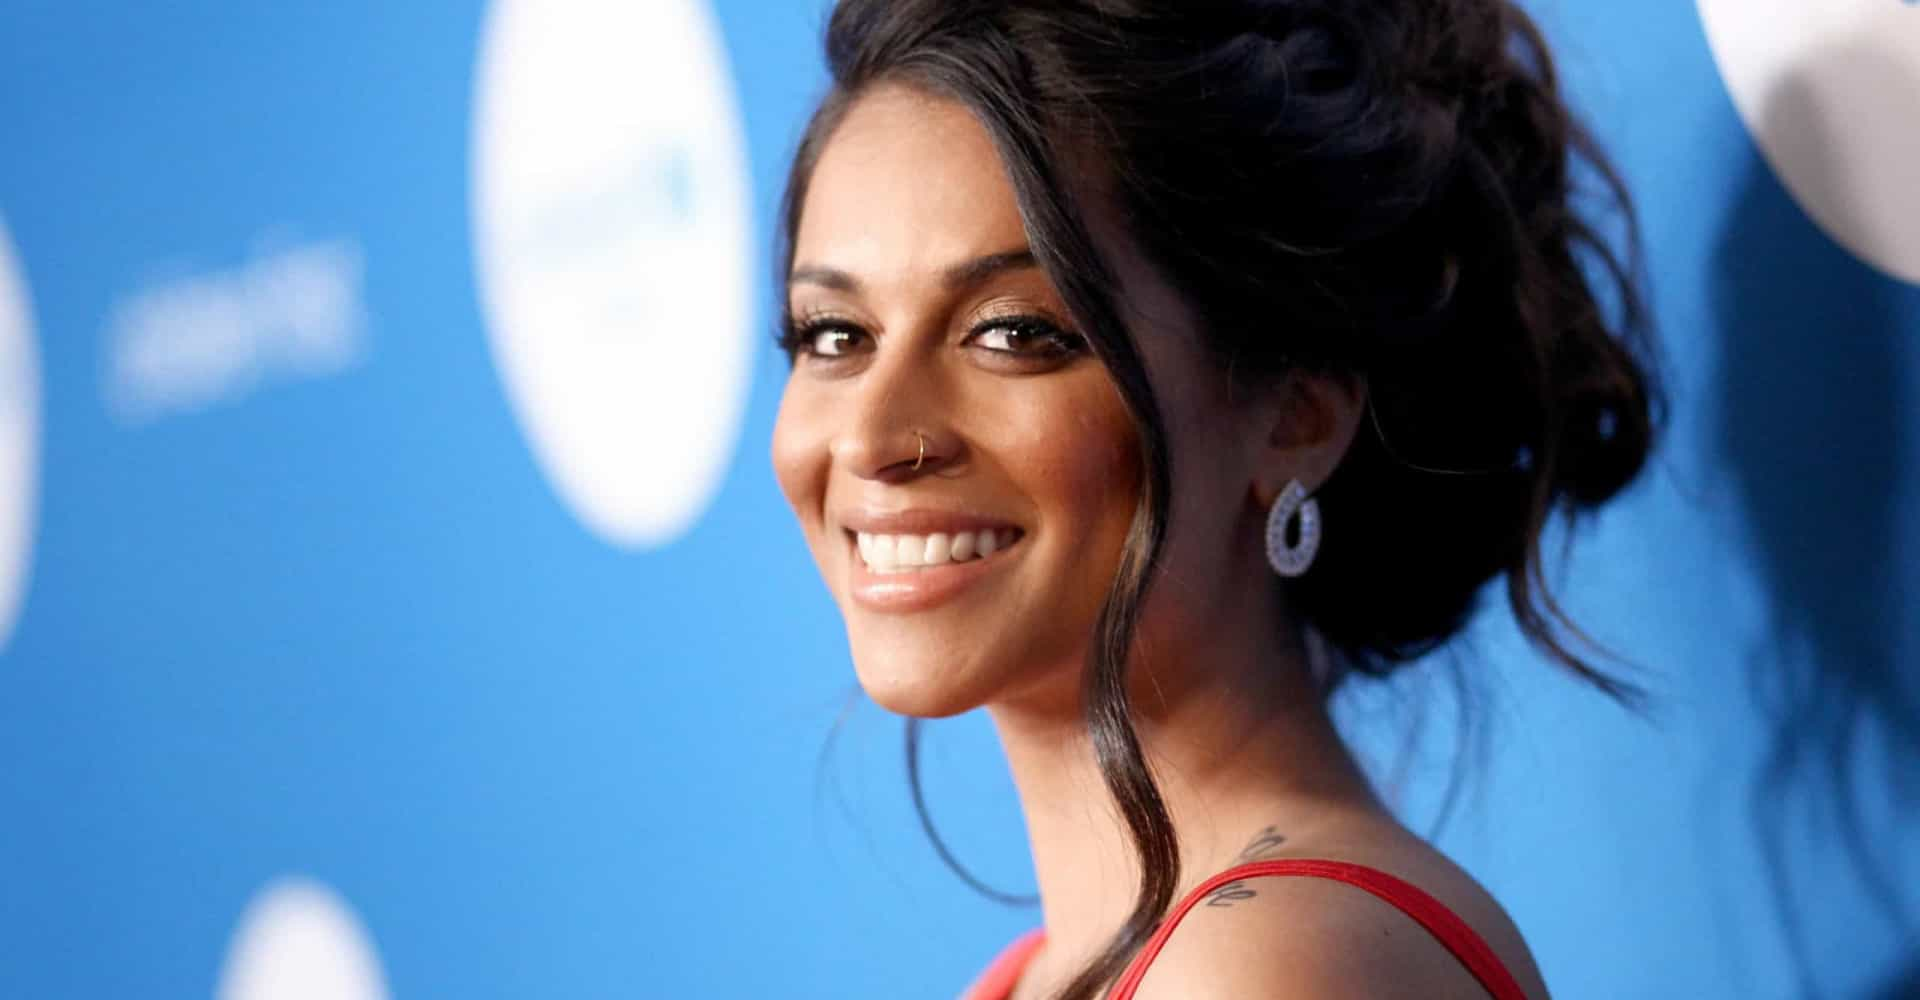 YouTube videos to late-night host: Who is Lilly Singh?